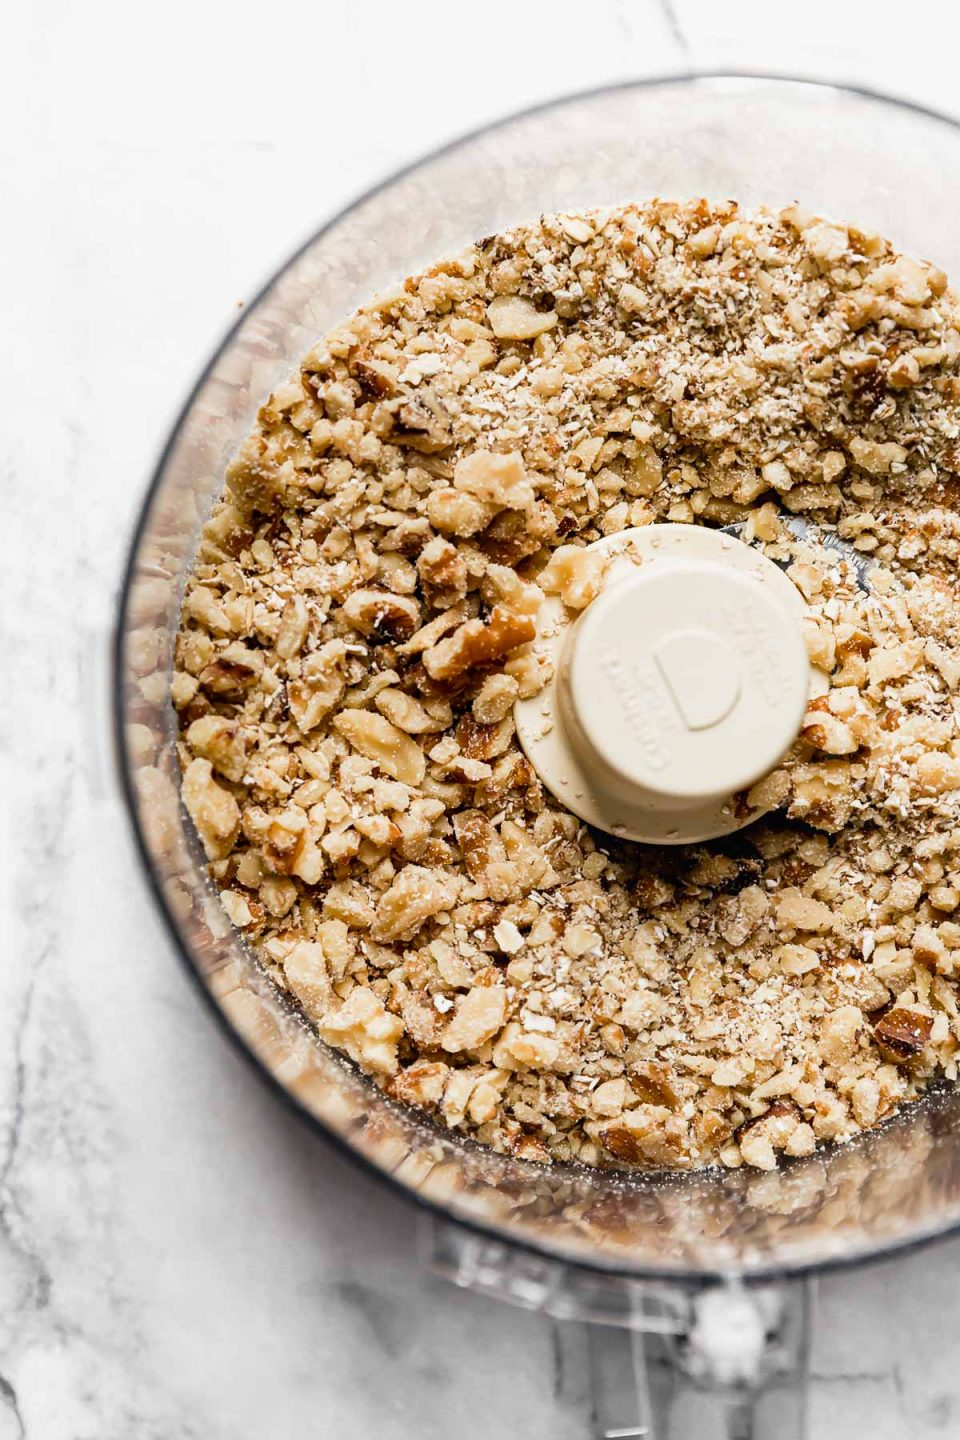 Crushing oats & walnuts in food processor for meatless burger recipe.